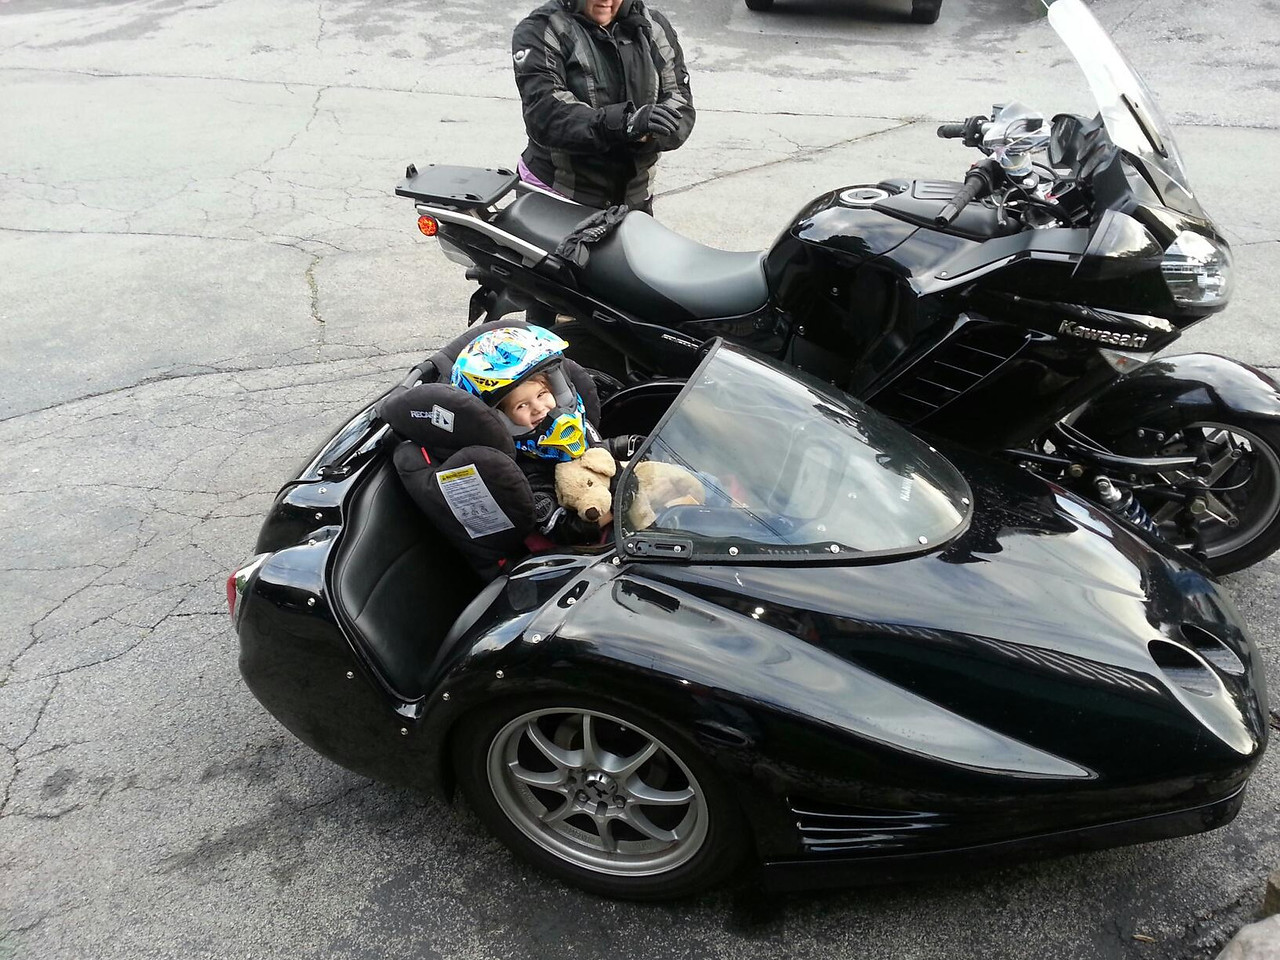 Zoe in the sidecar